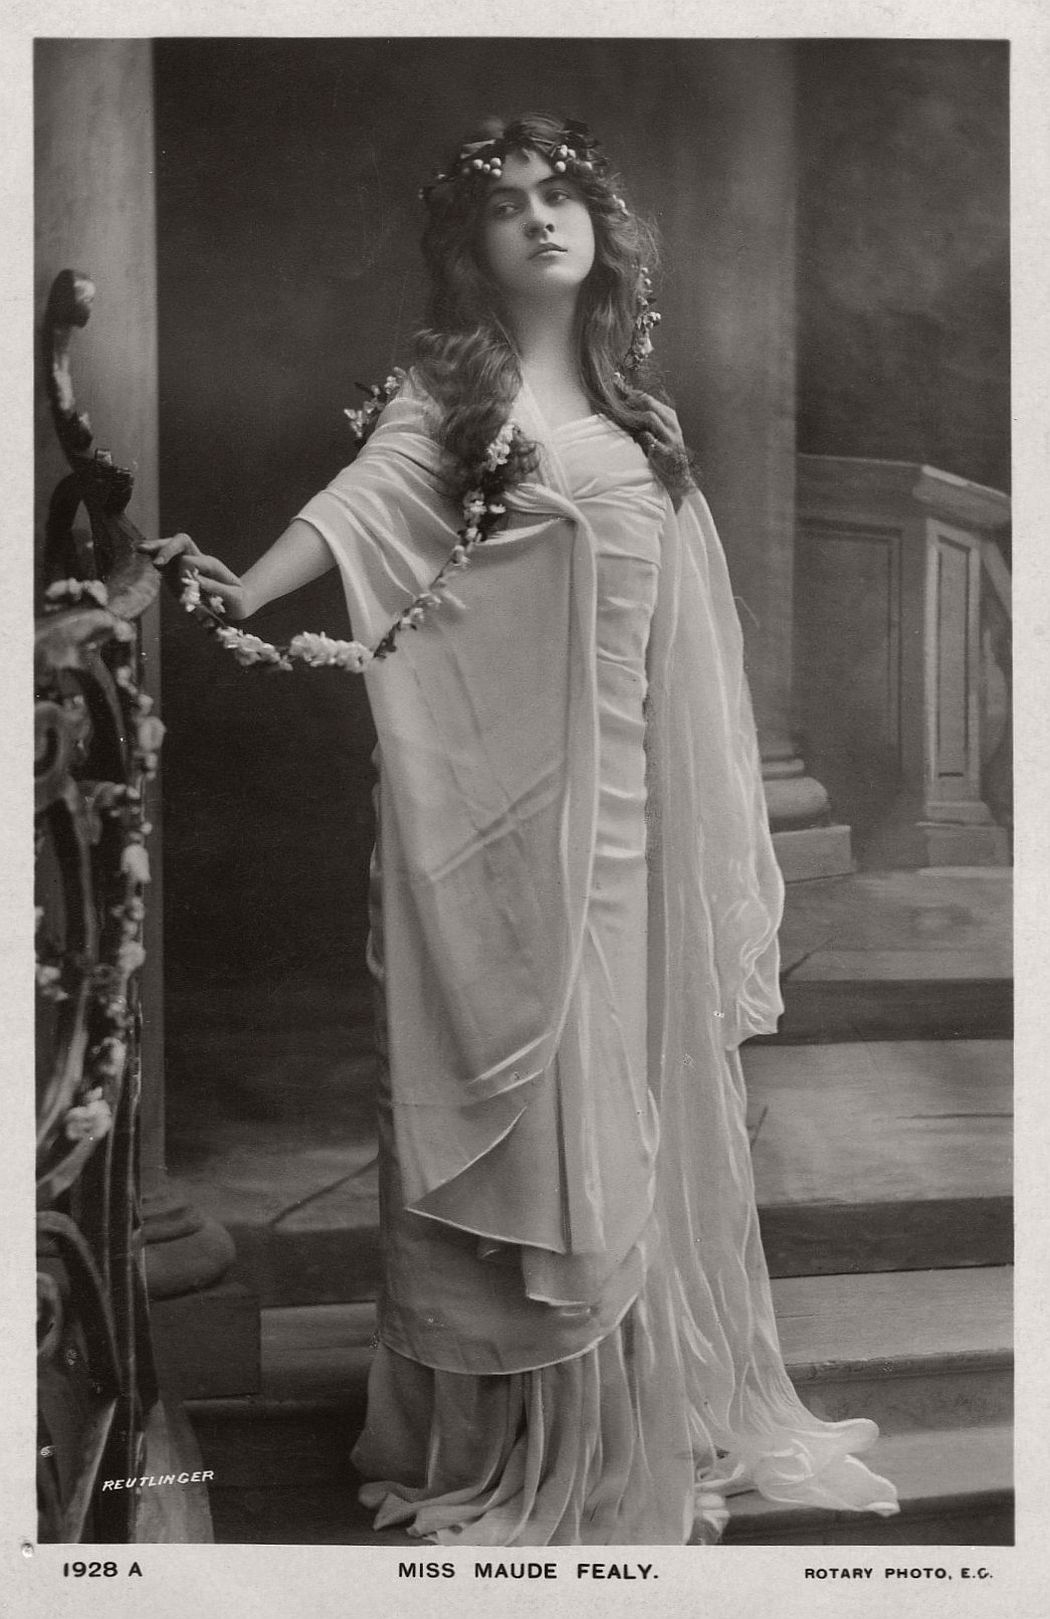 vintage-postcard-of-actress-miss-maude-fealy-1900s-early-xx-century-17